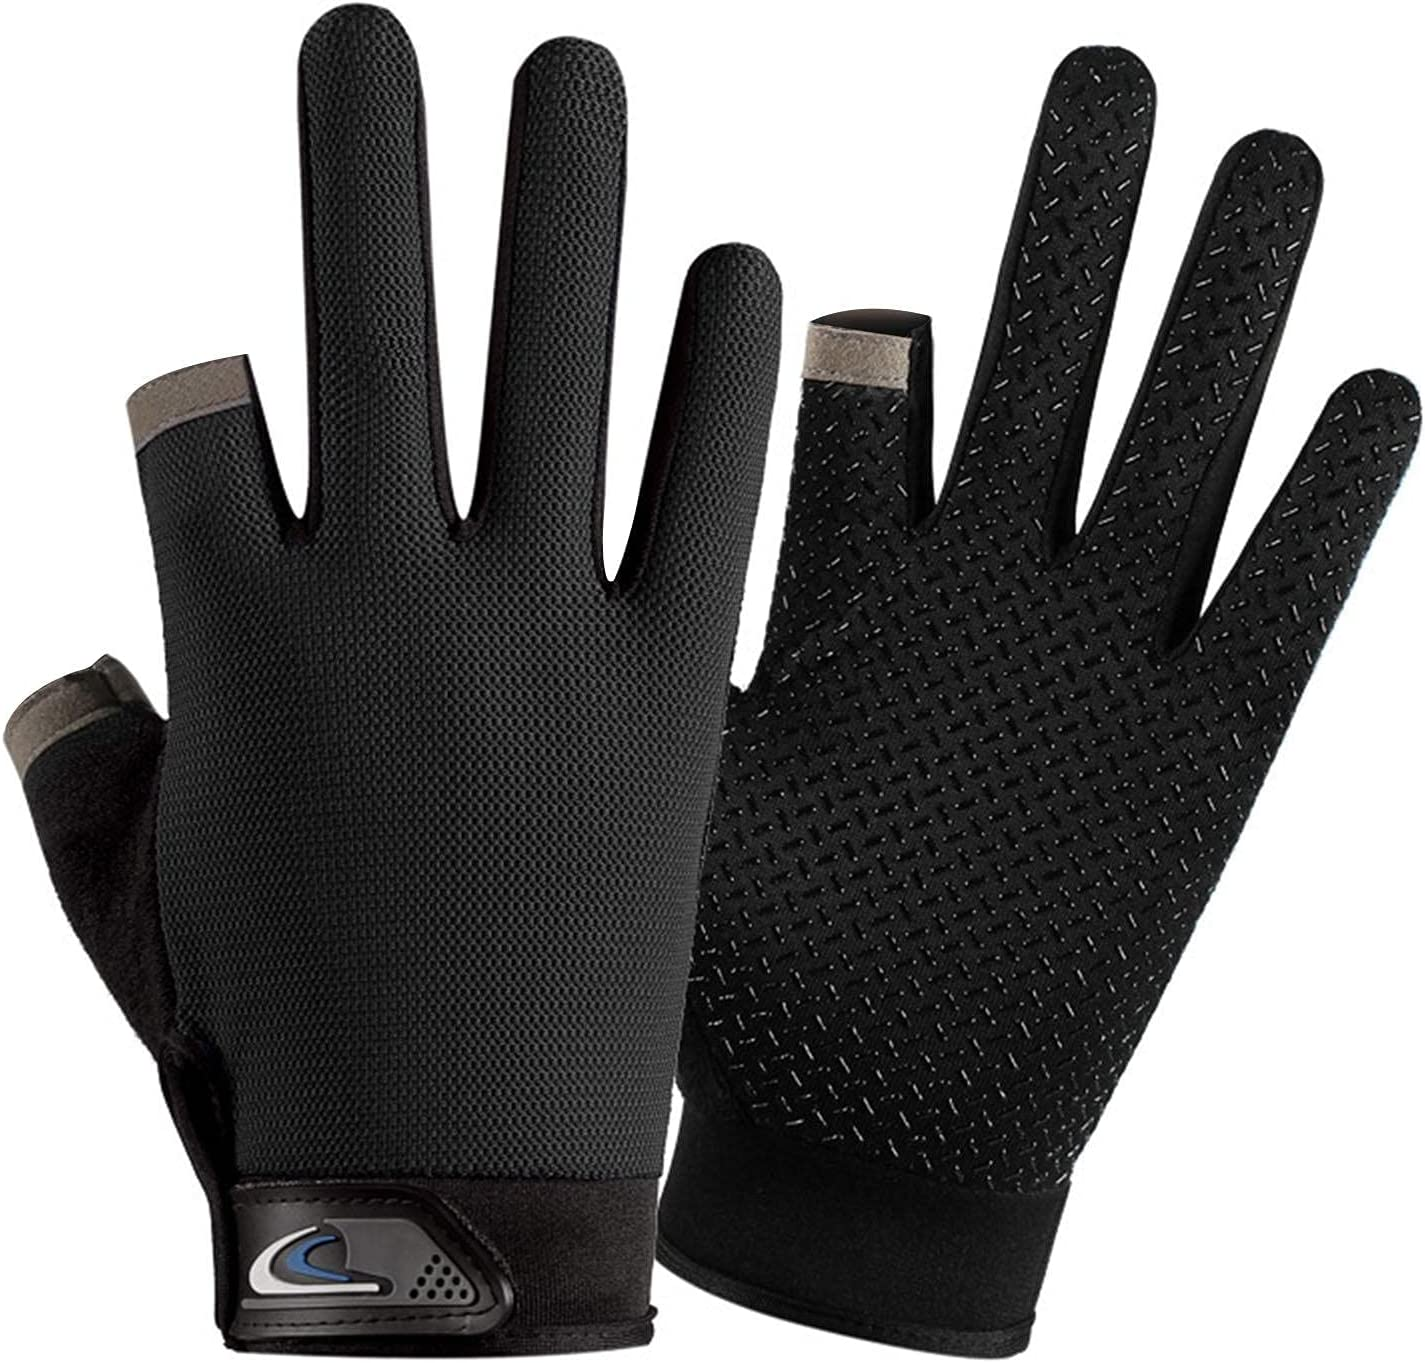 Ranking TOP1 Foaenda Breathable Outdoor Fishing Design S Quick-Release 70% OFF Outlet Gloves